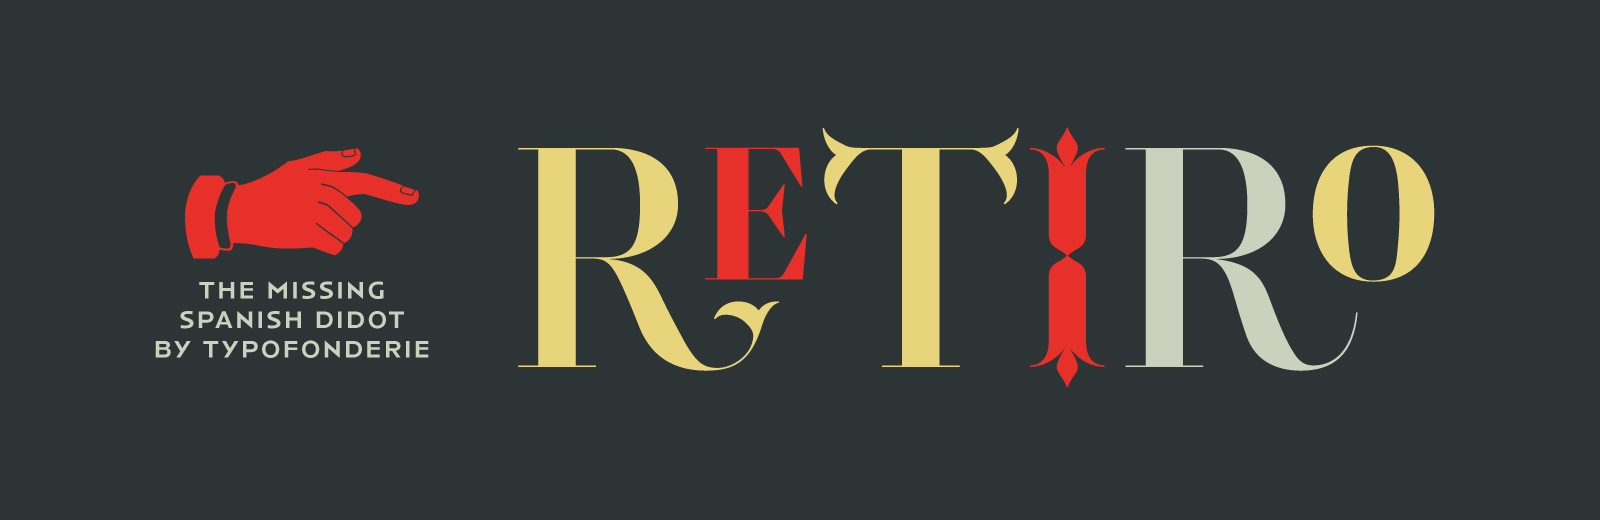 Retiro, a Full of life Hispanic Didot in 5 optical sizes exclusively available at Typofonderie